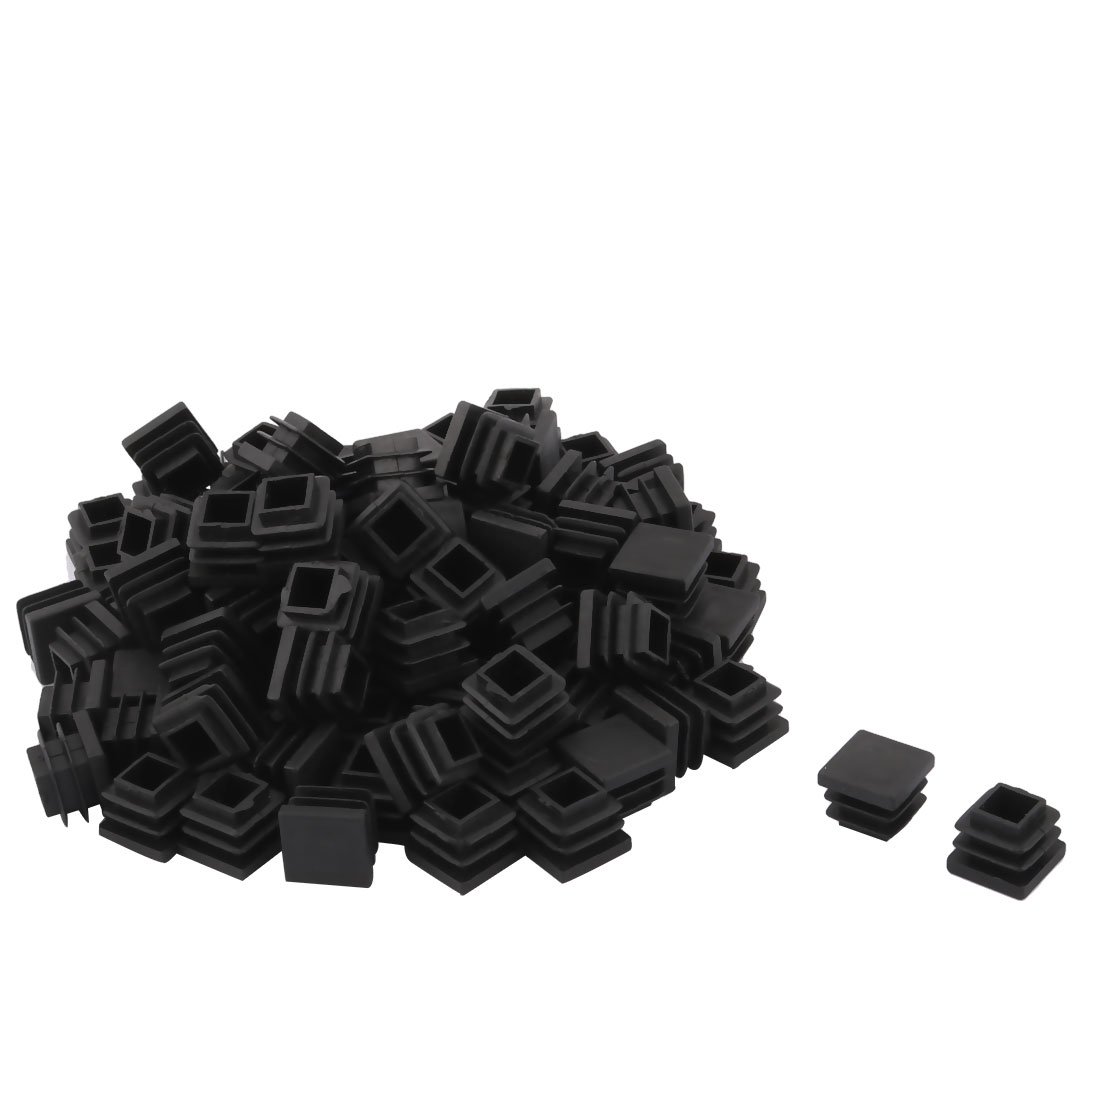 Plastic Square Design Tube Insert End Blanking Cover Cap Black 16 x 16mm 100pcs